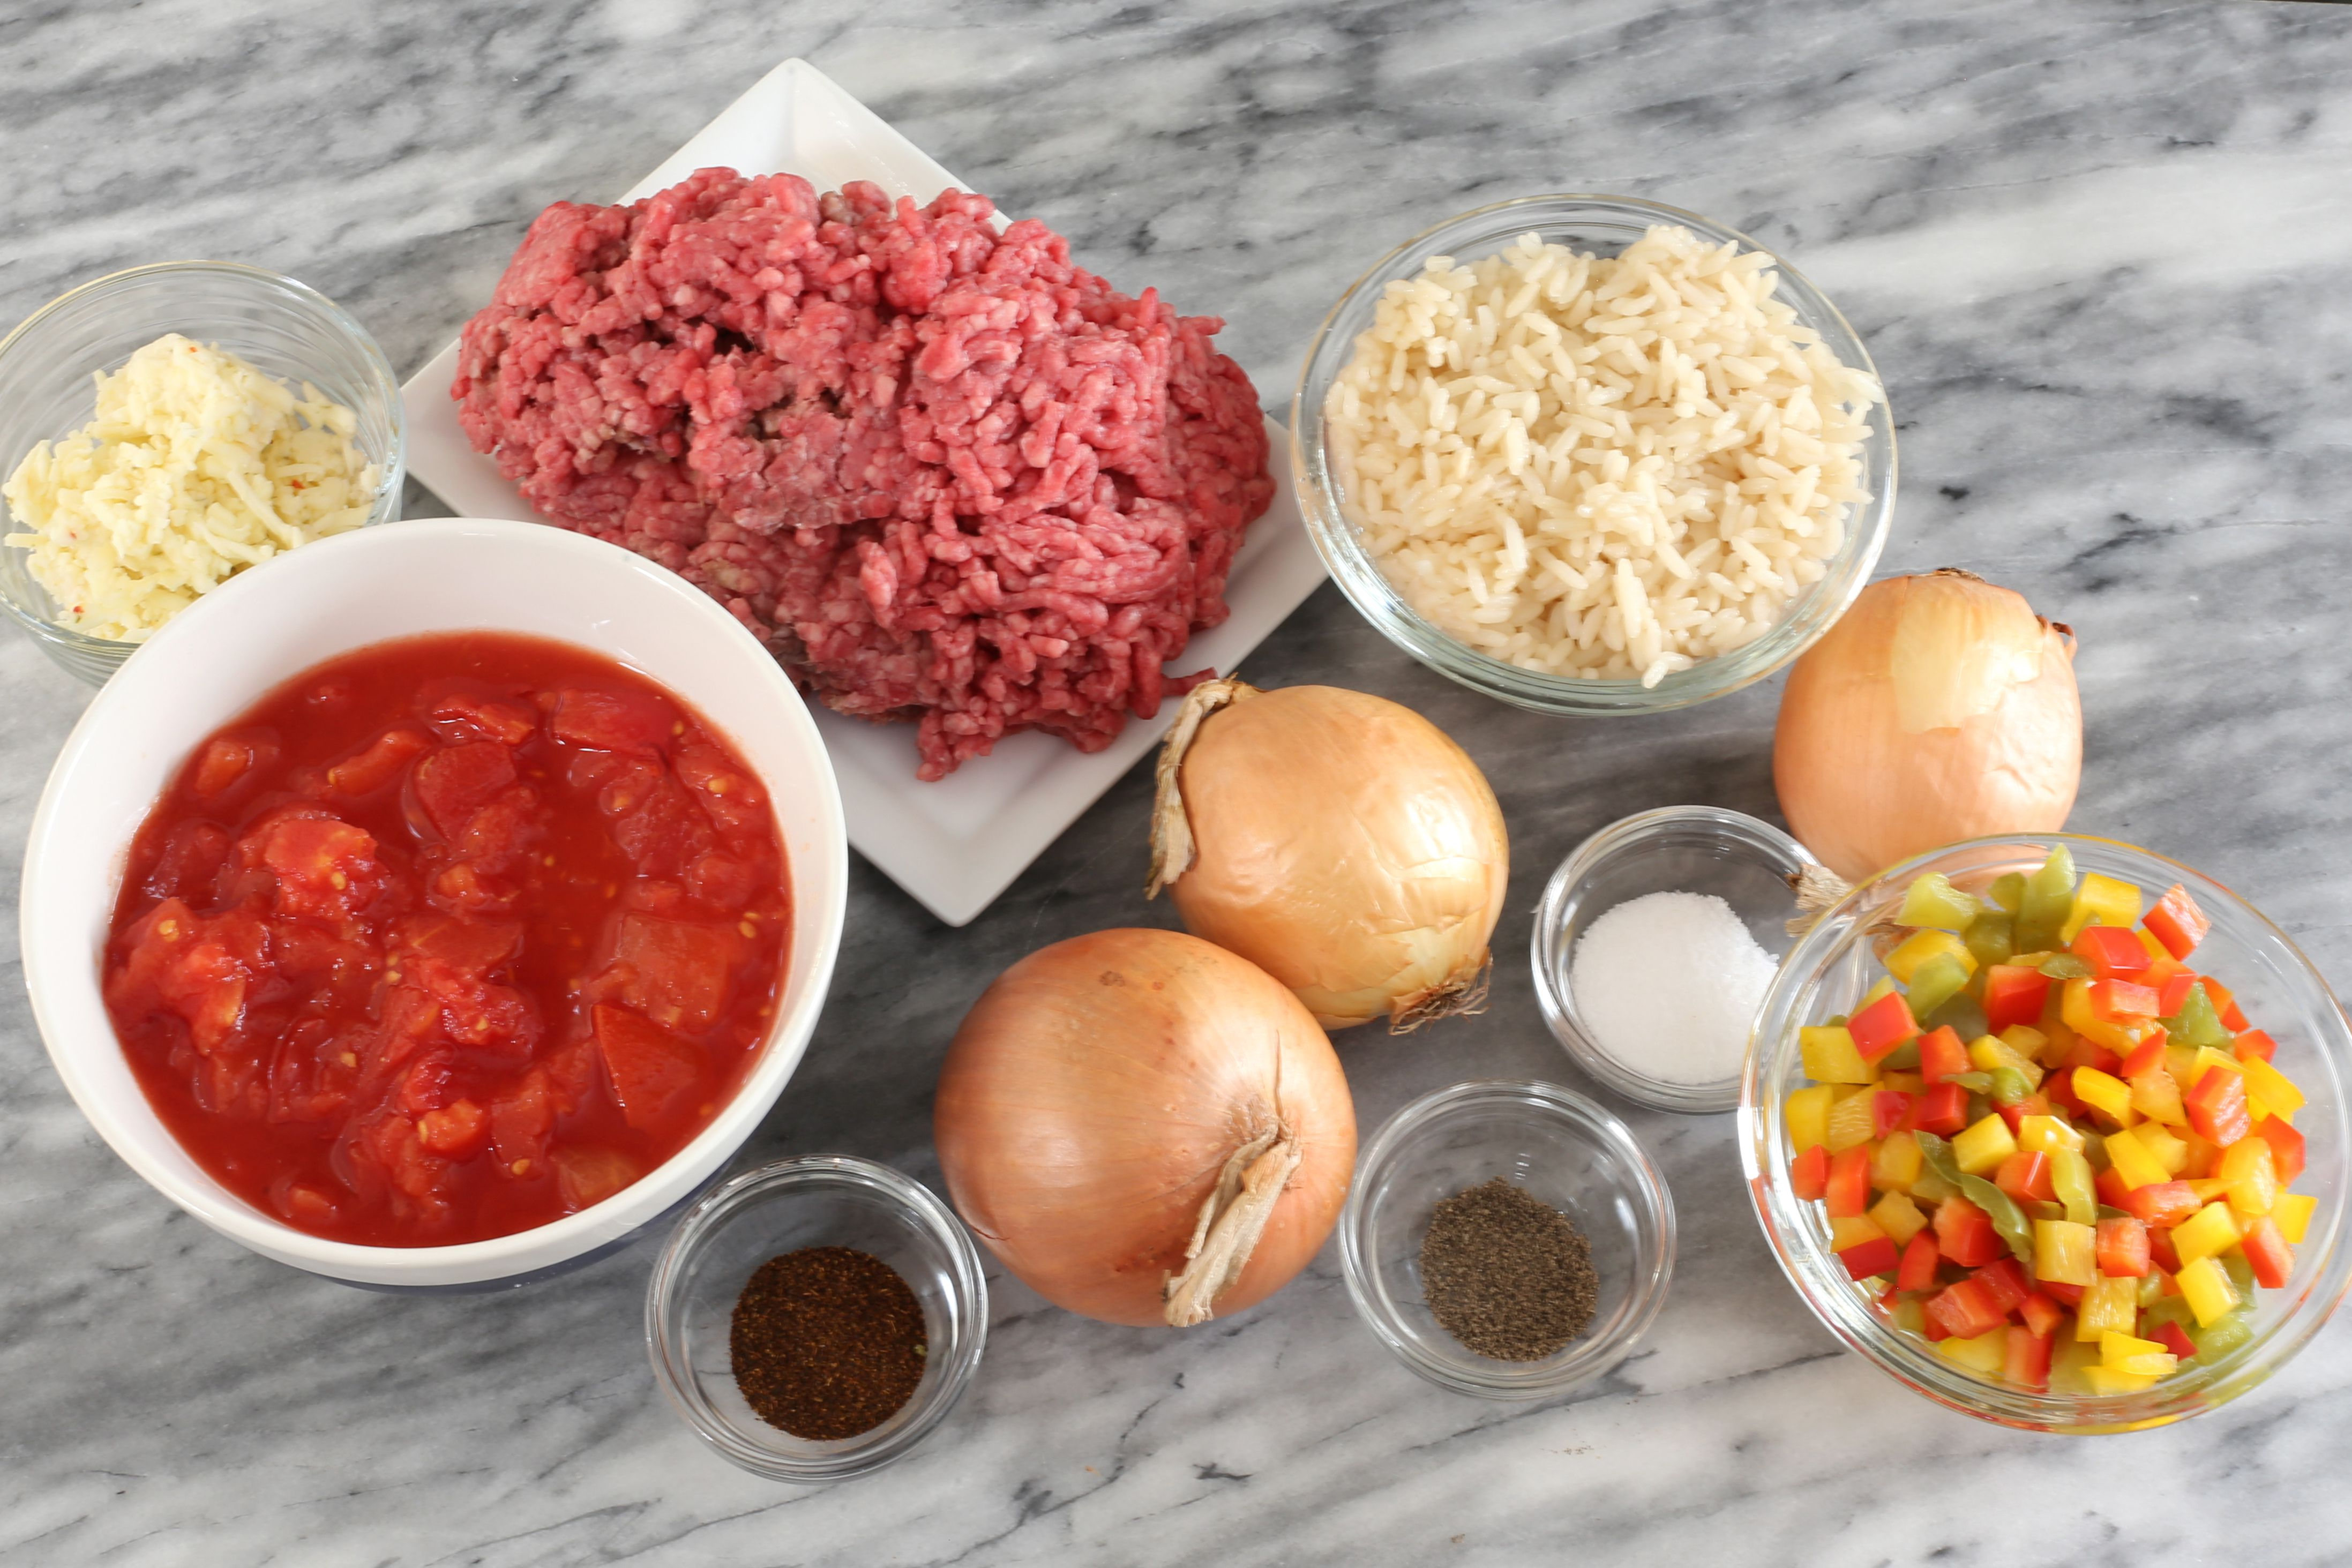 Ingredients for a ground beef and rice casserole.